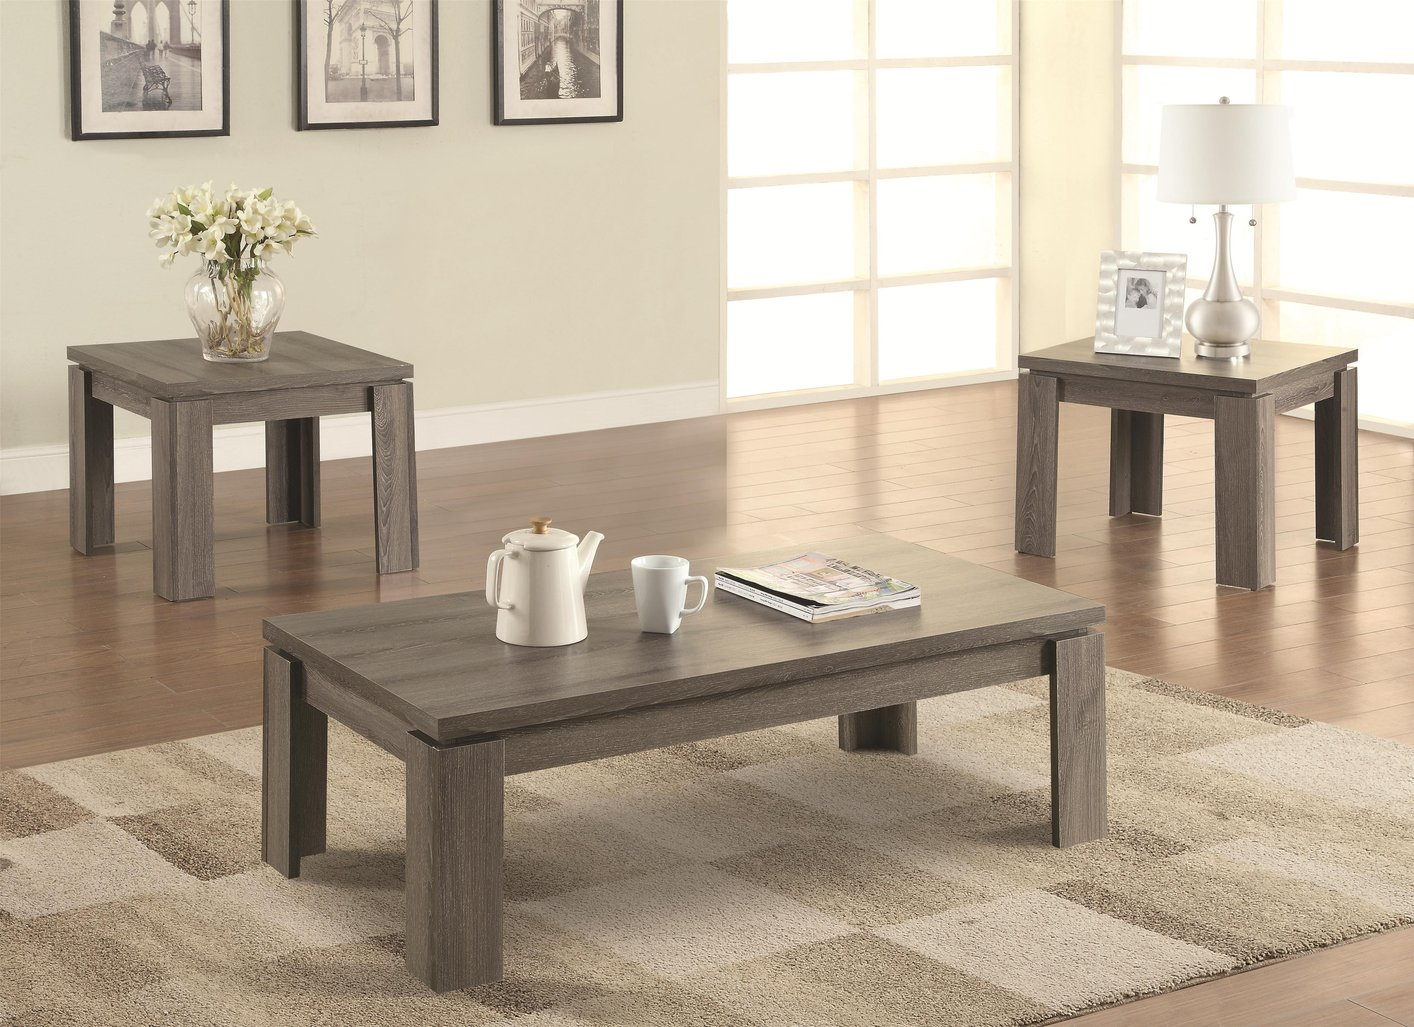 Grey Wood Coffee Table Set & Grey Wood Coffee Table Set - Steal-A-Sofa Furniture Outlet Los ...